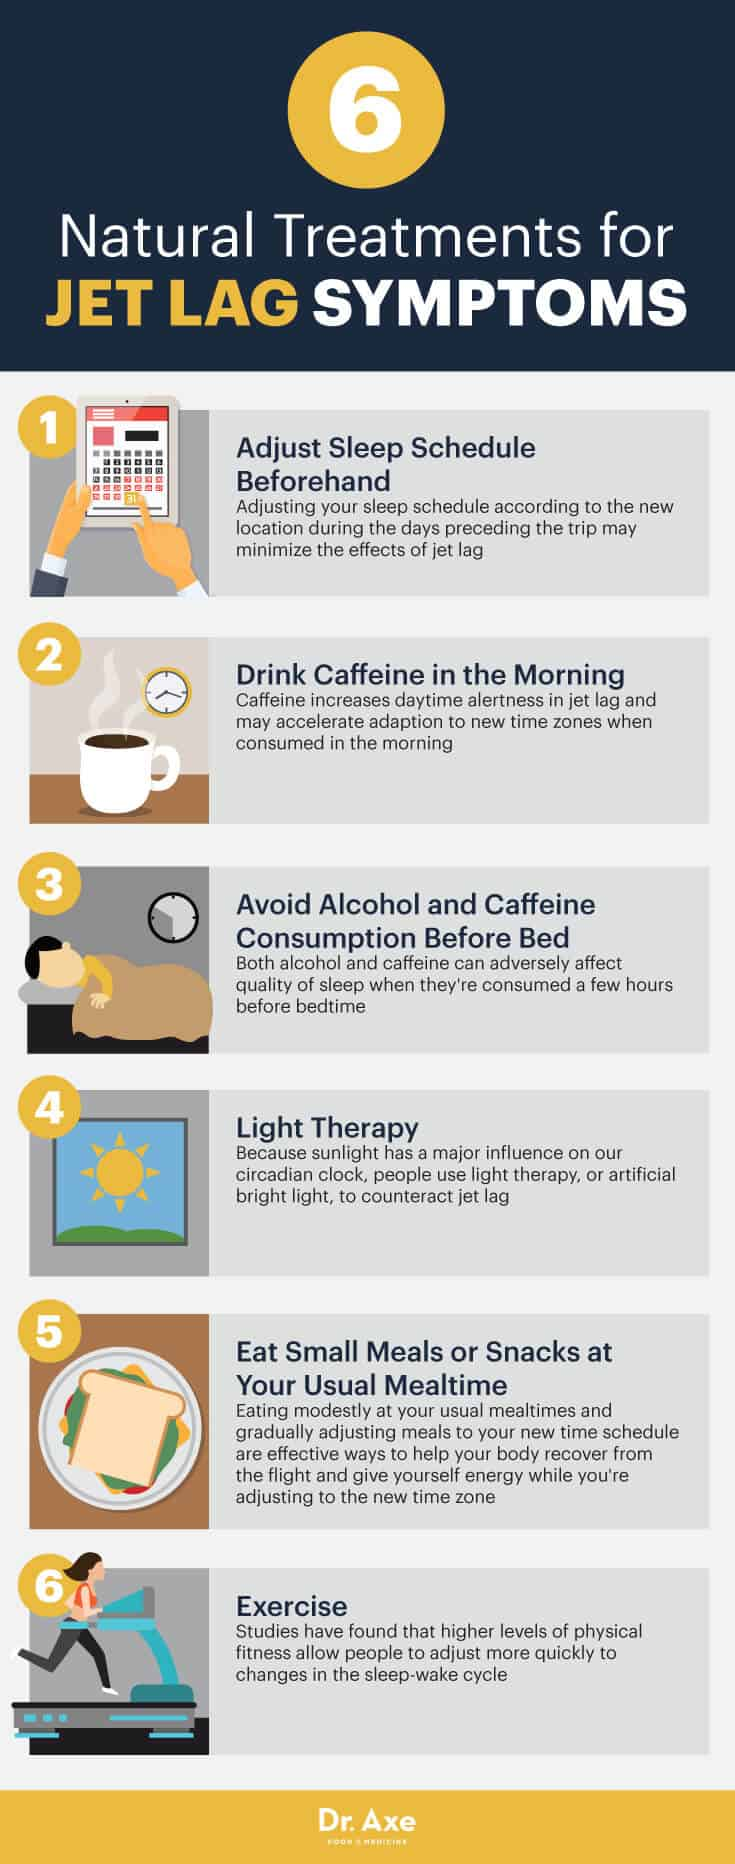 Natural treatments for jet lag symptoms - Dr. Axe